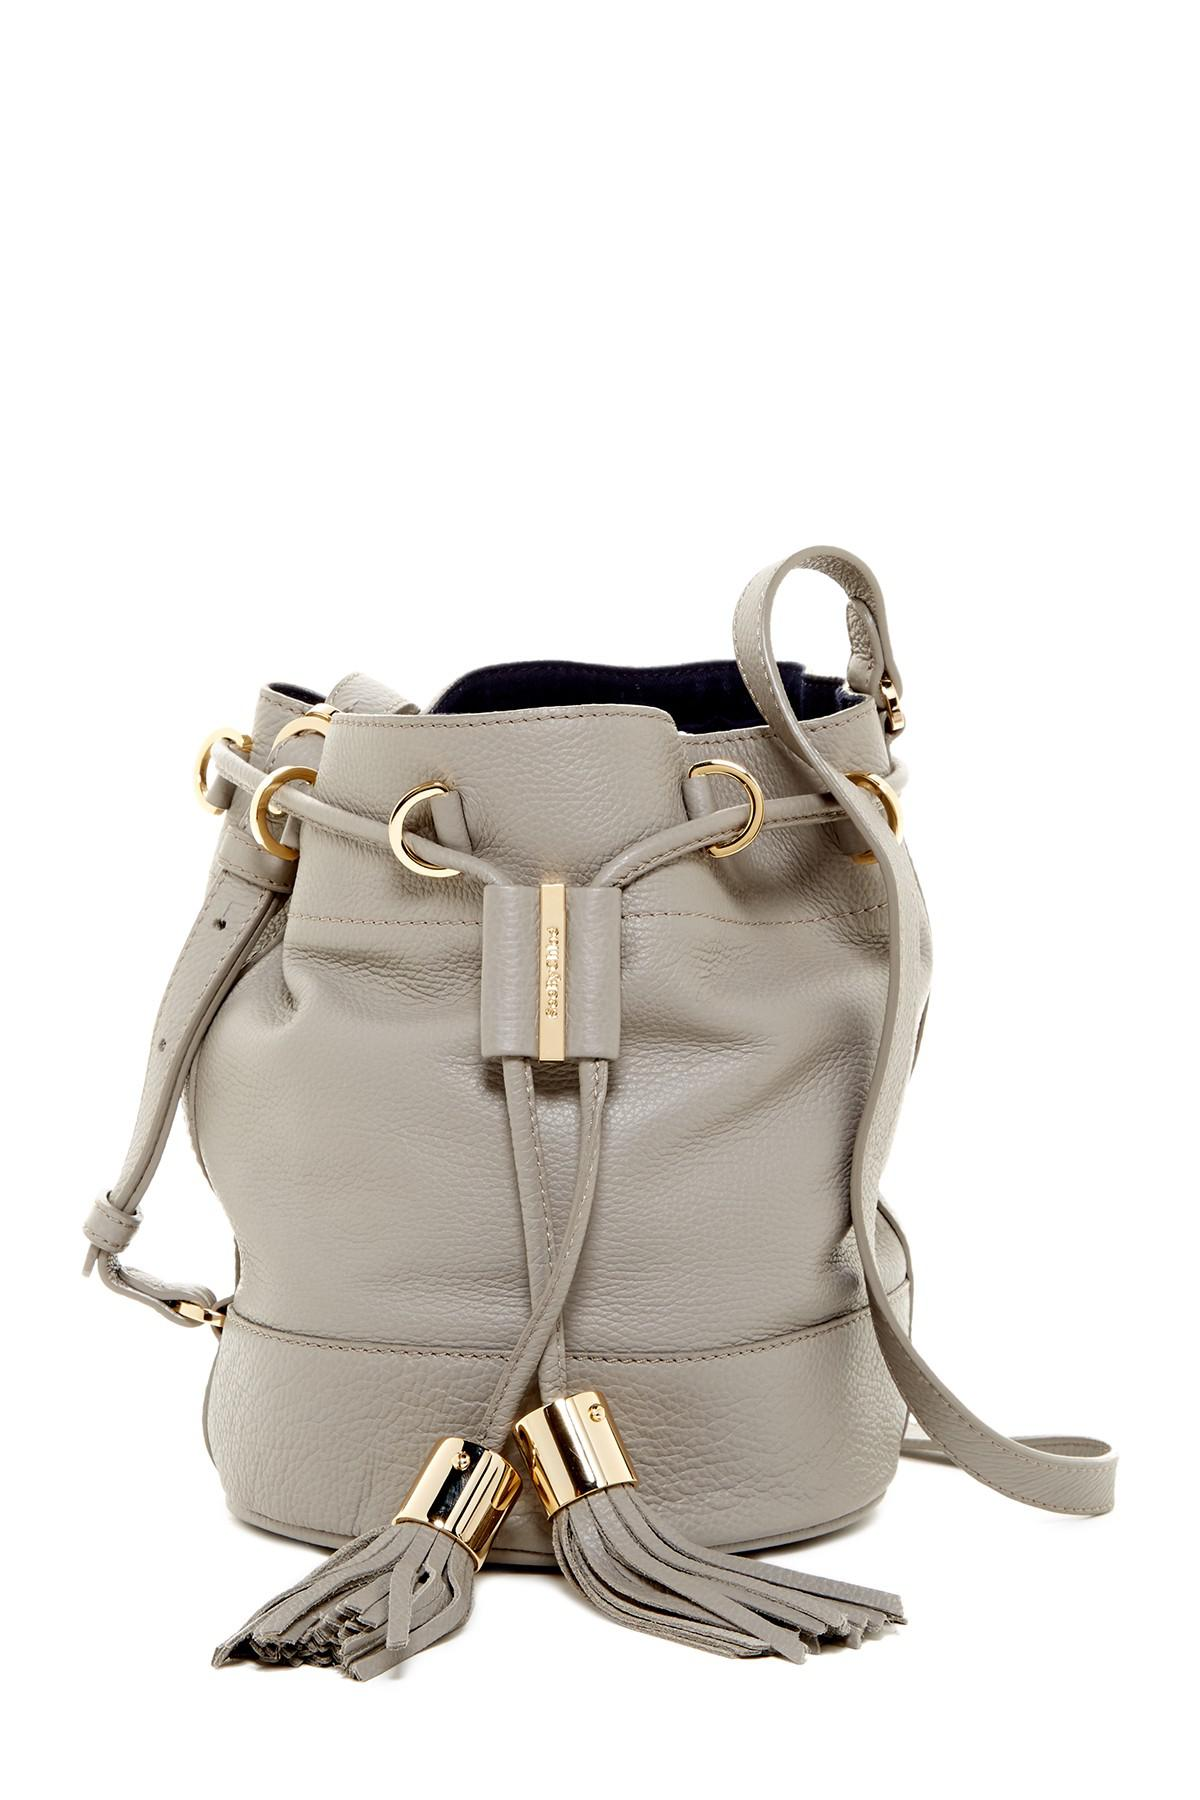 Gallery Previously Sold At Nordstrom Rack Women S See By Chloe Vicki Bucket Bag